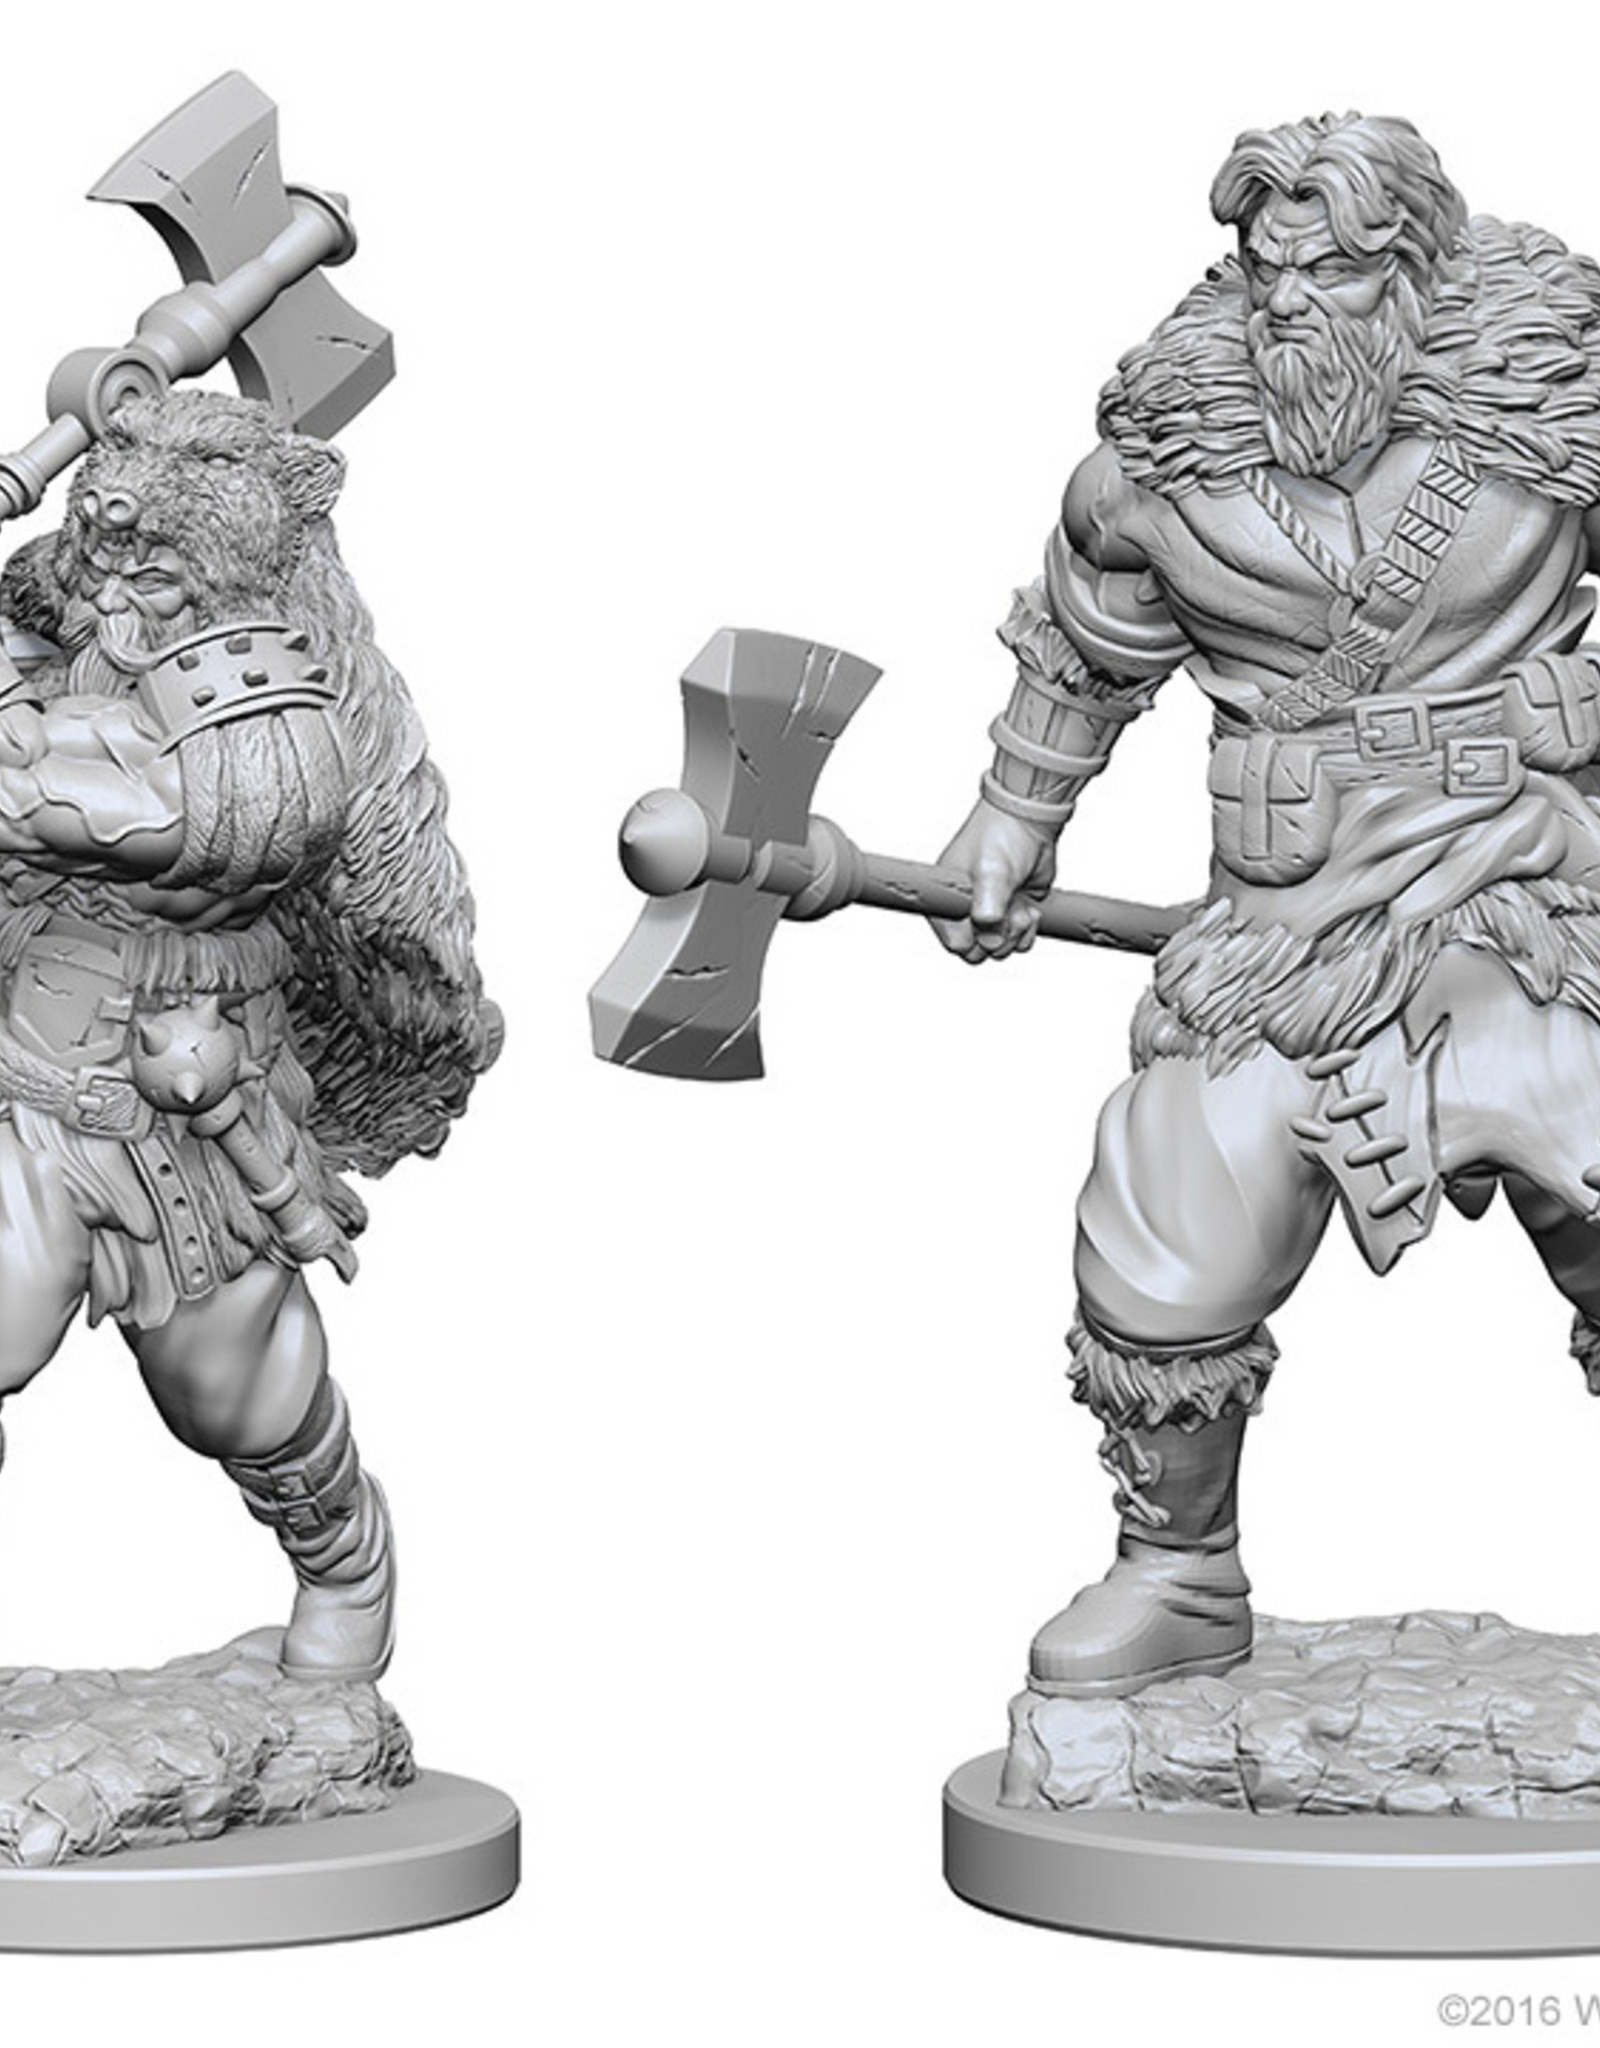 Dungeons & Dragons Nolzur`s Marvelous W1 Human Male Barbarian